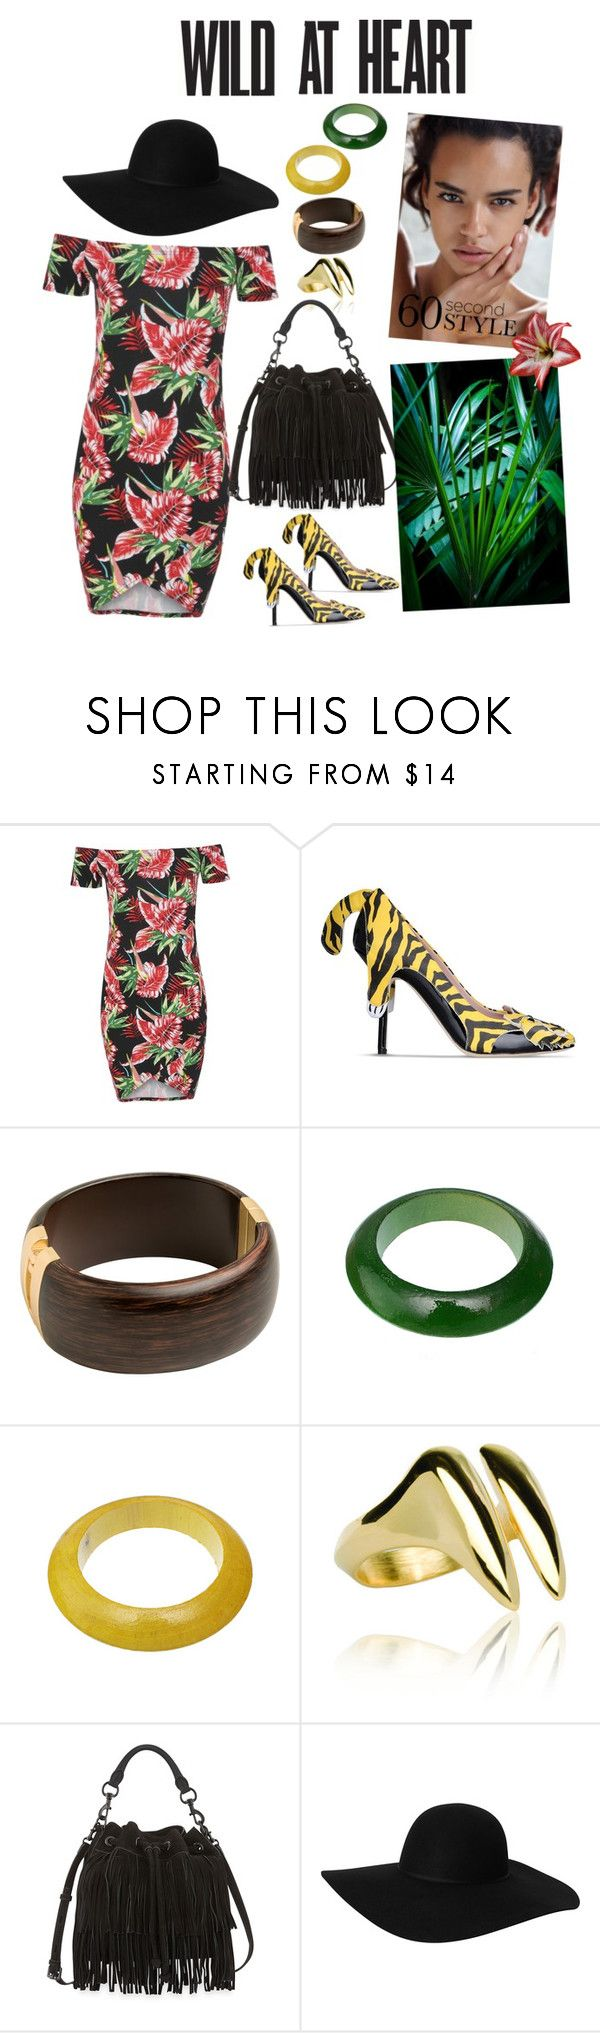 """Tropical"" by julie4ever ❤ liked on Polyvore featuring Boohoo, Moschino Cheap & Chic, Katie Rowland, Rebecca Minkoff, Monki, tropical, hot, Exotic and summerfashion"